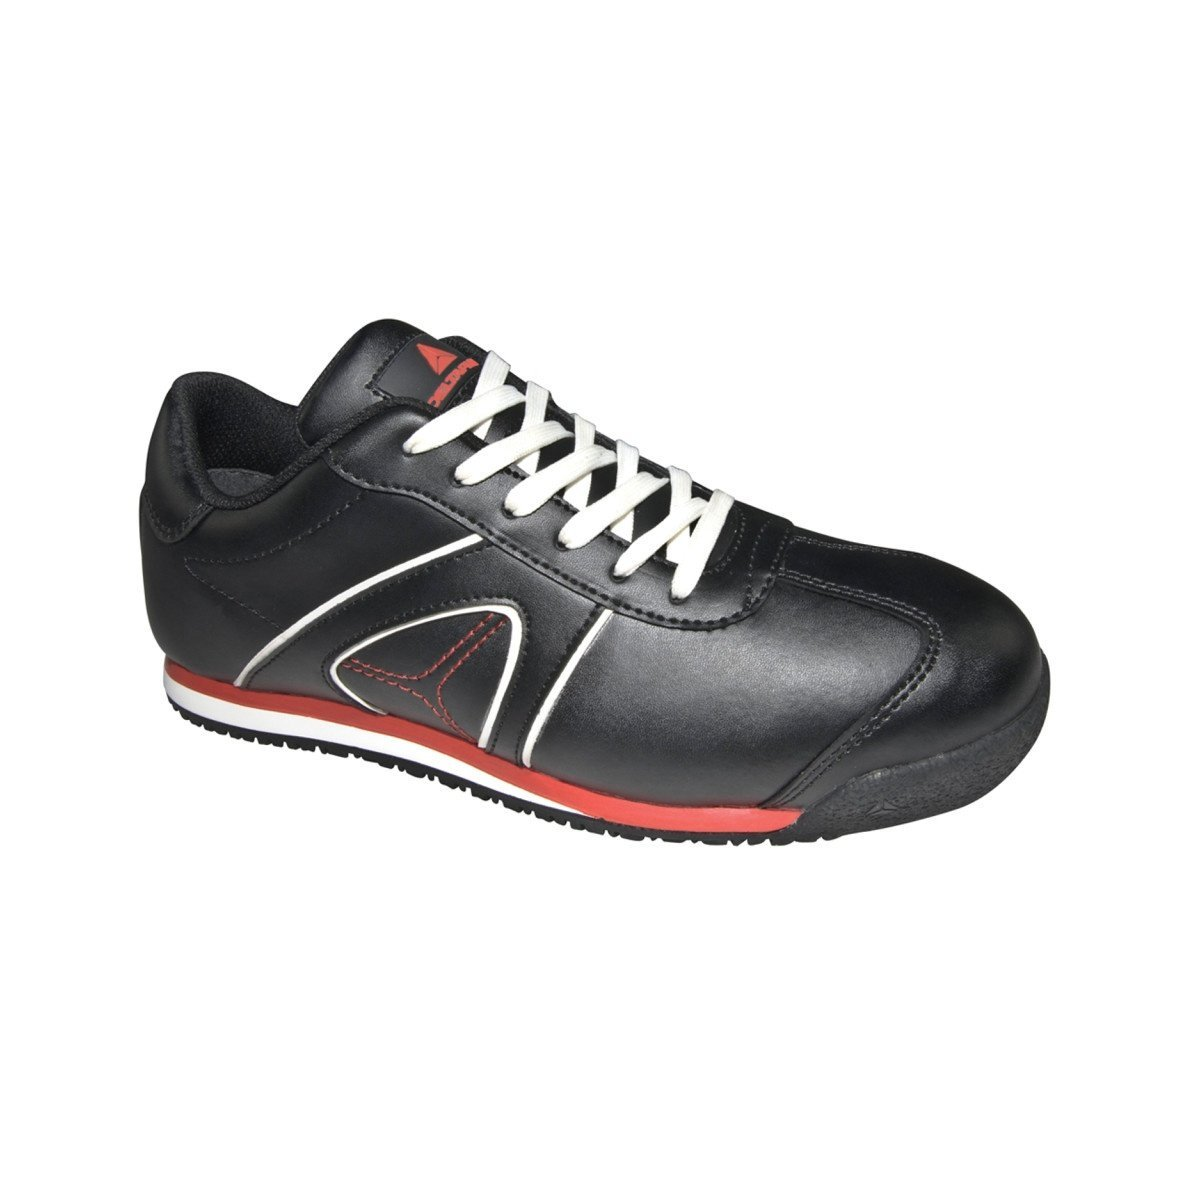 Deltaplus Women's Spirit Low Black Leather Safety Trainer Shoes US Size 10 by Delta